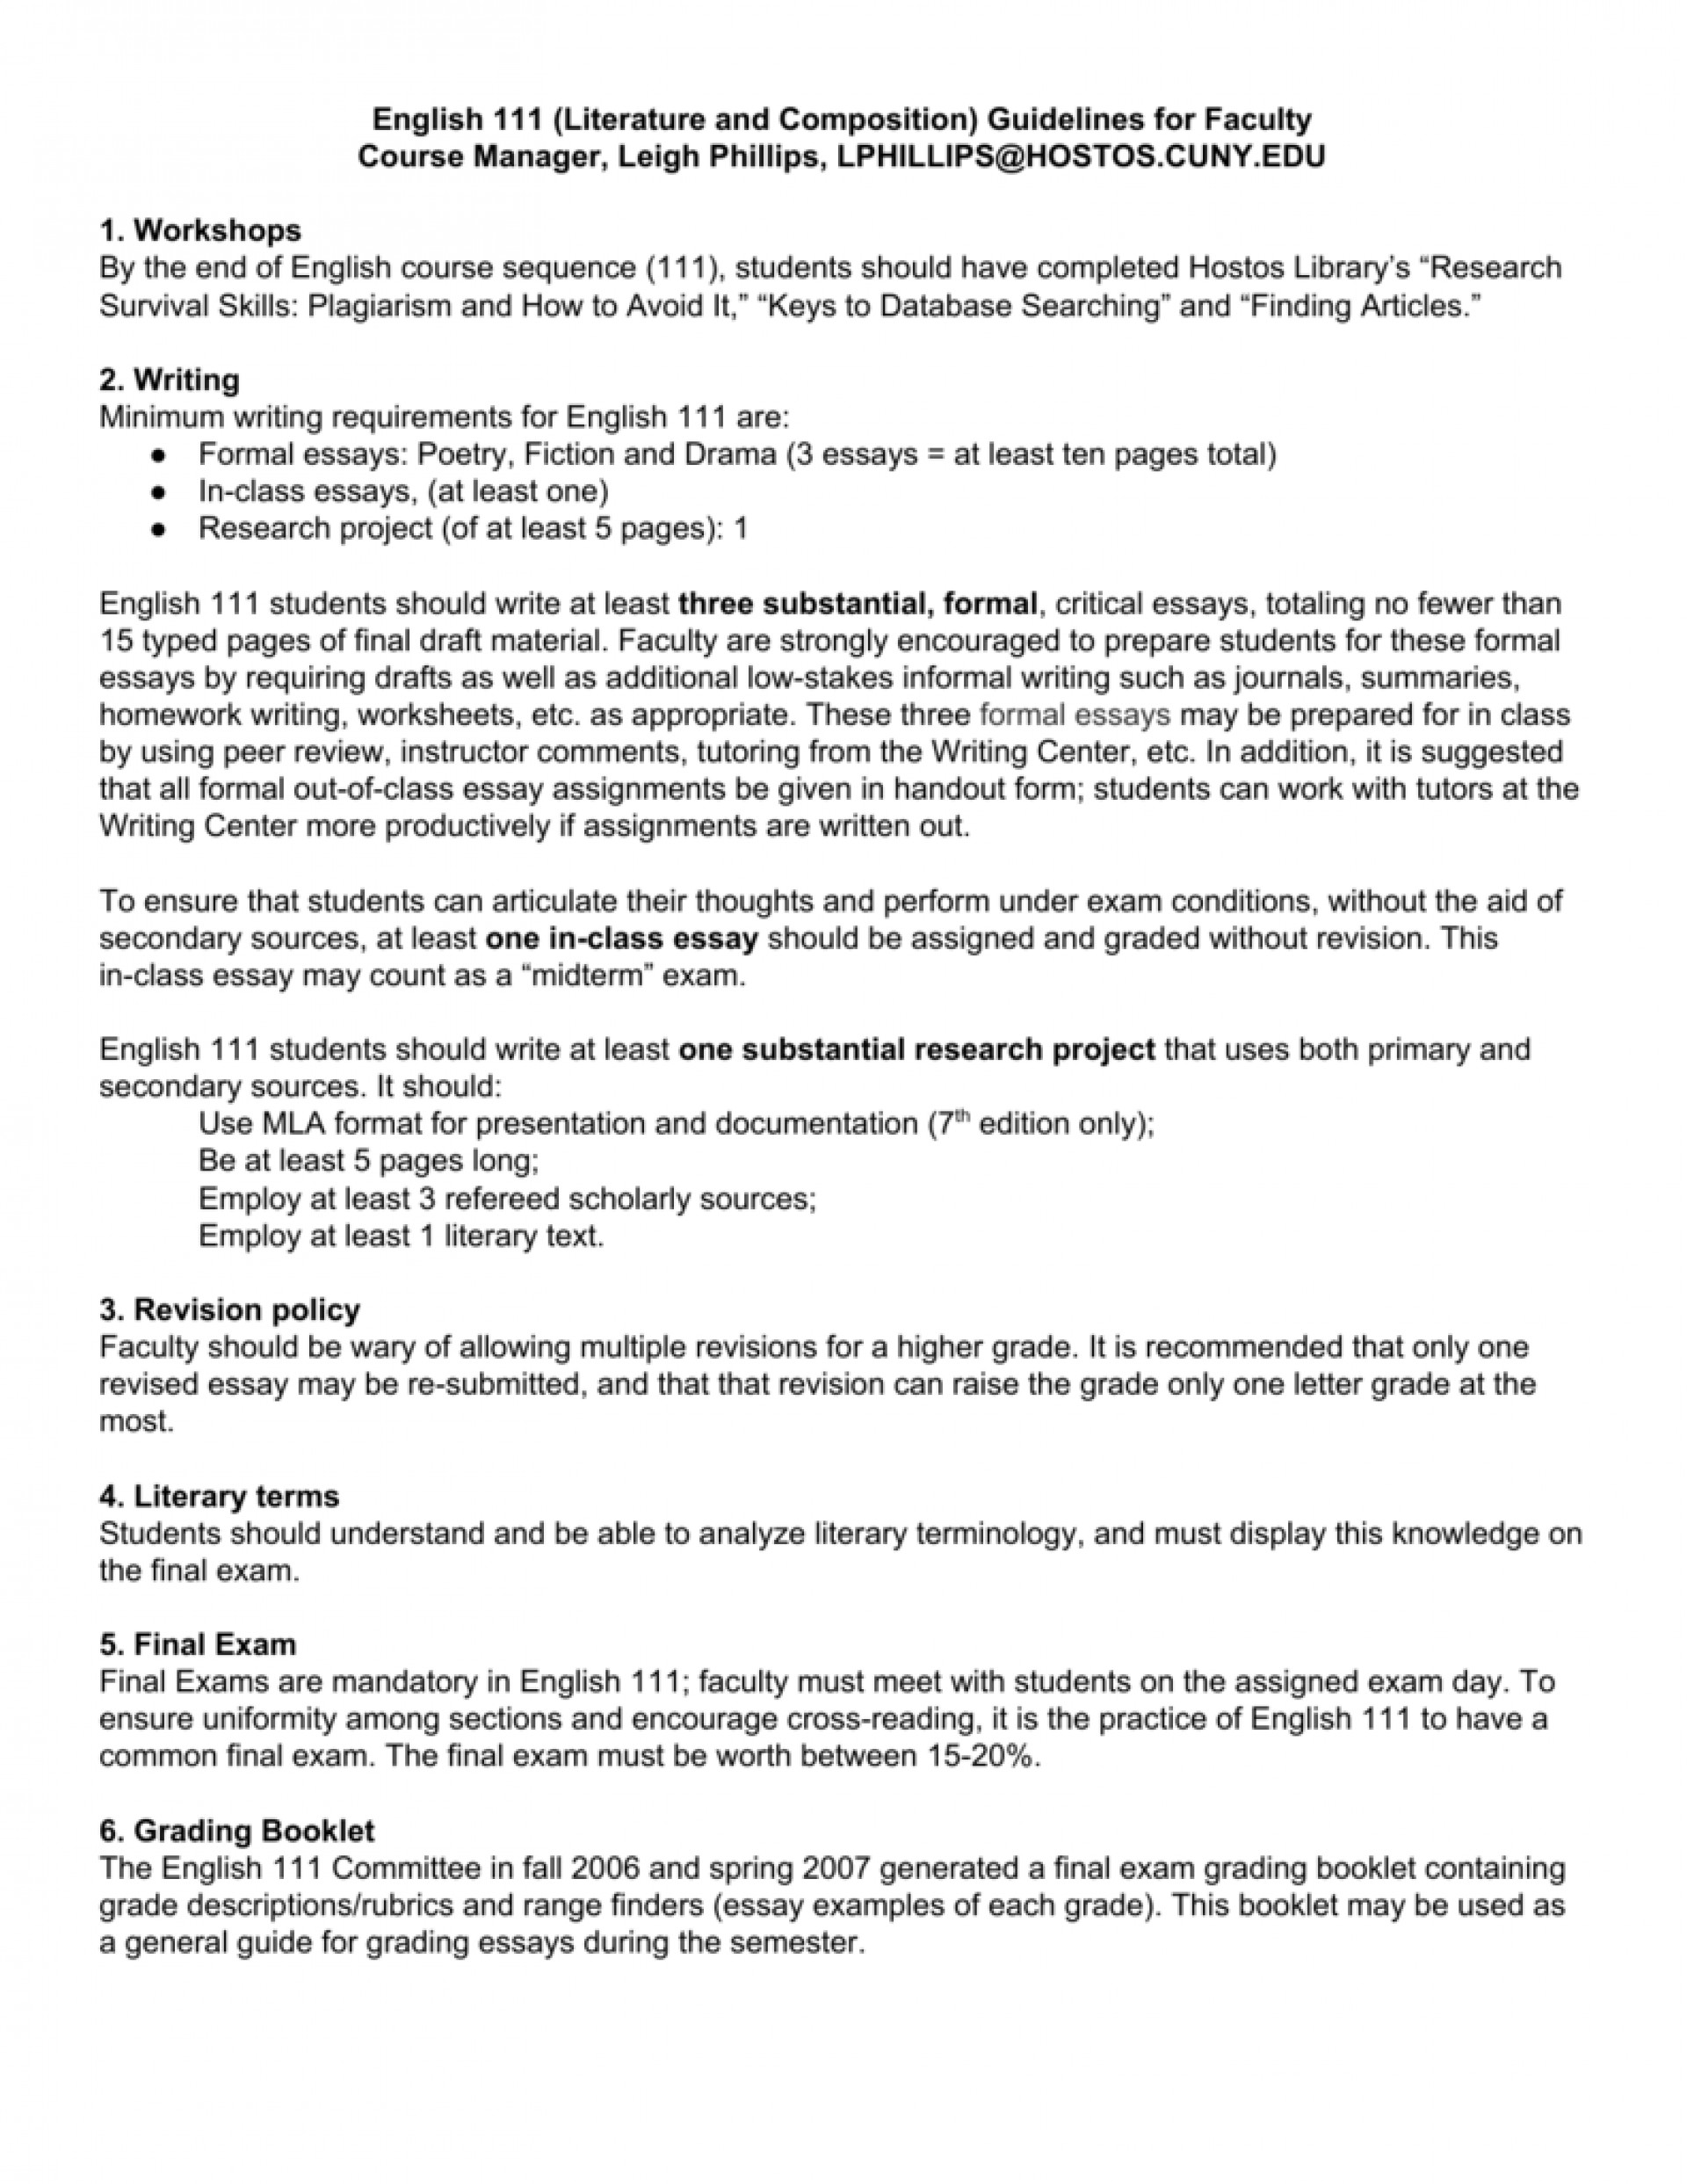 010 Essay Example Issa Final Exam Answers 008210852 1 Awesome 1920